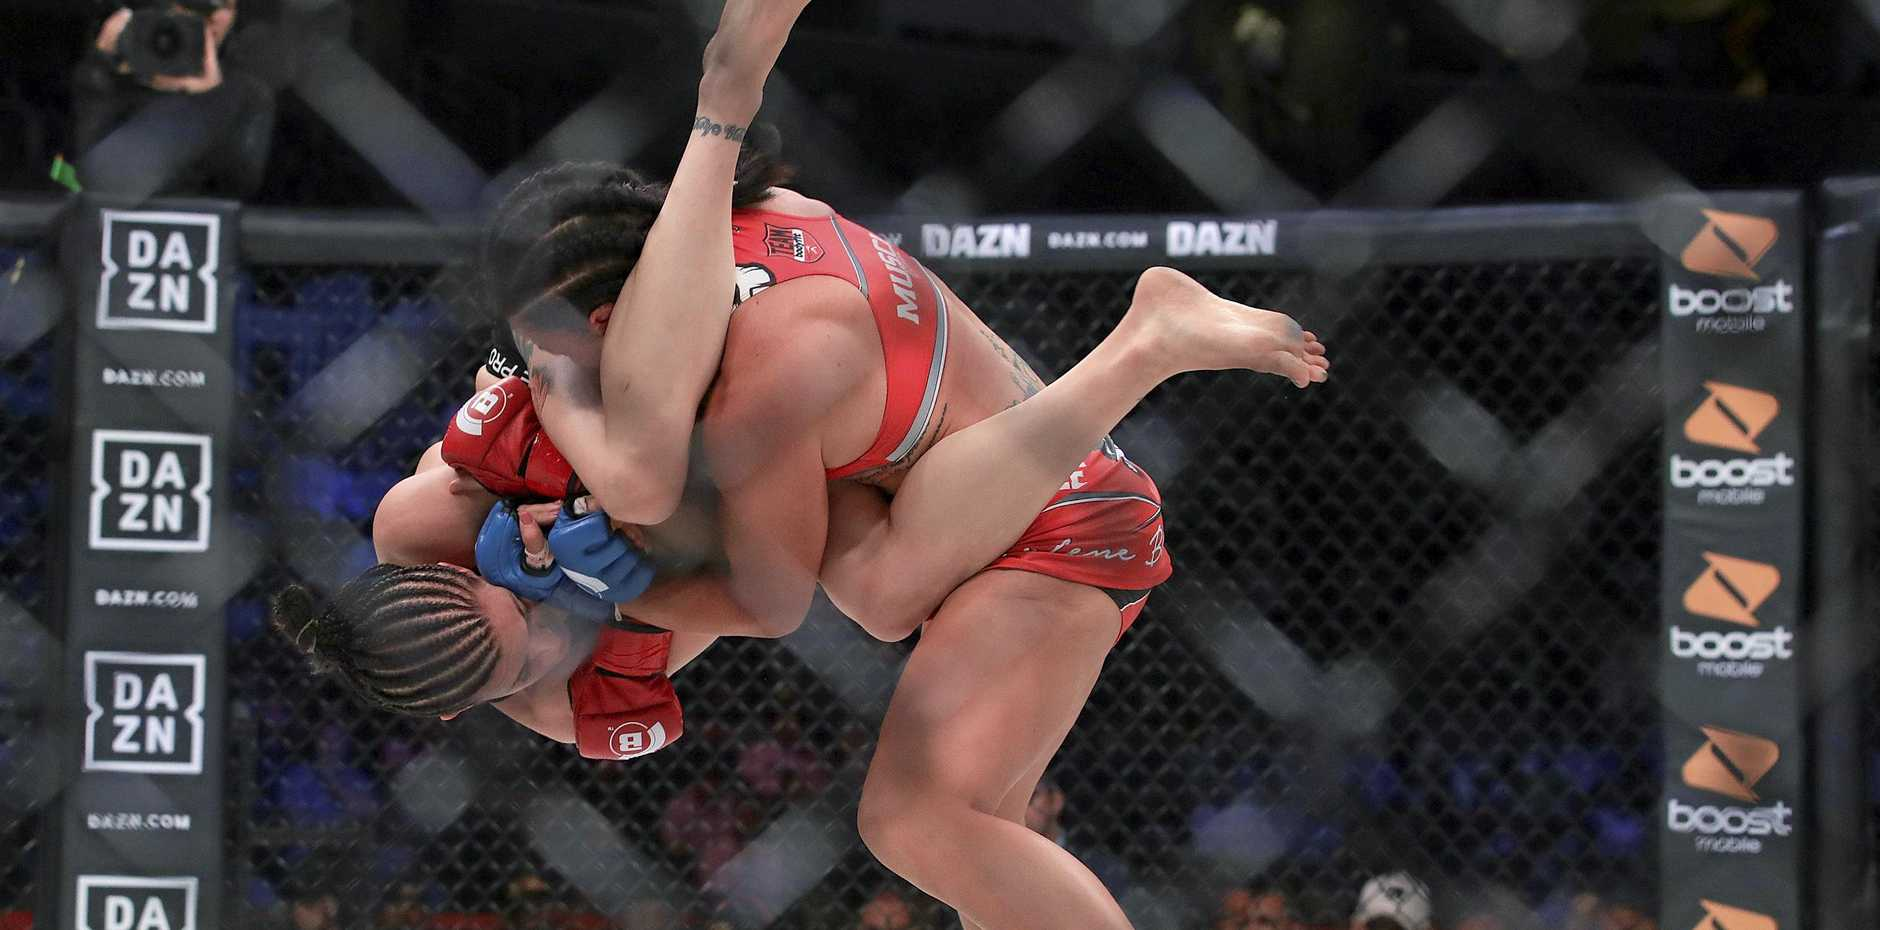 BACK IN THE GAME? Arlene Blencowe (top) slams Amber Leibrock during their featherweight mixed martial arts fight at Bellator 206 in San Jose, California, last September. Blencowe won by knockout in the third round. (AP Photo/Jeff Chiu)